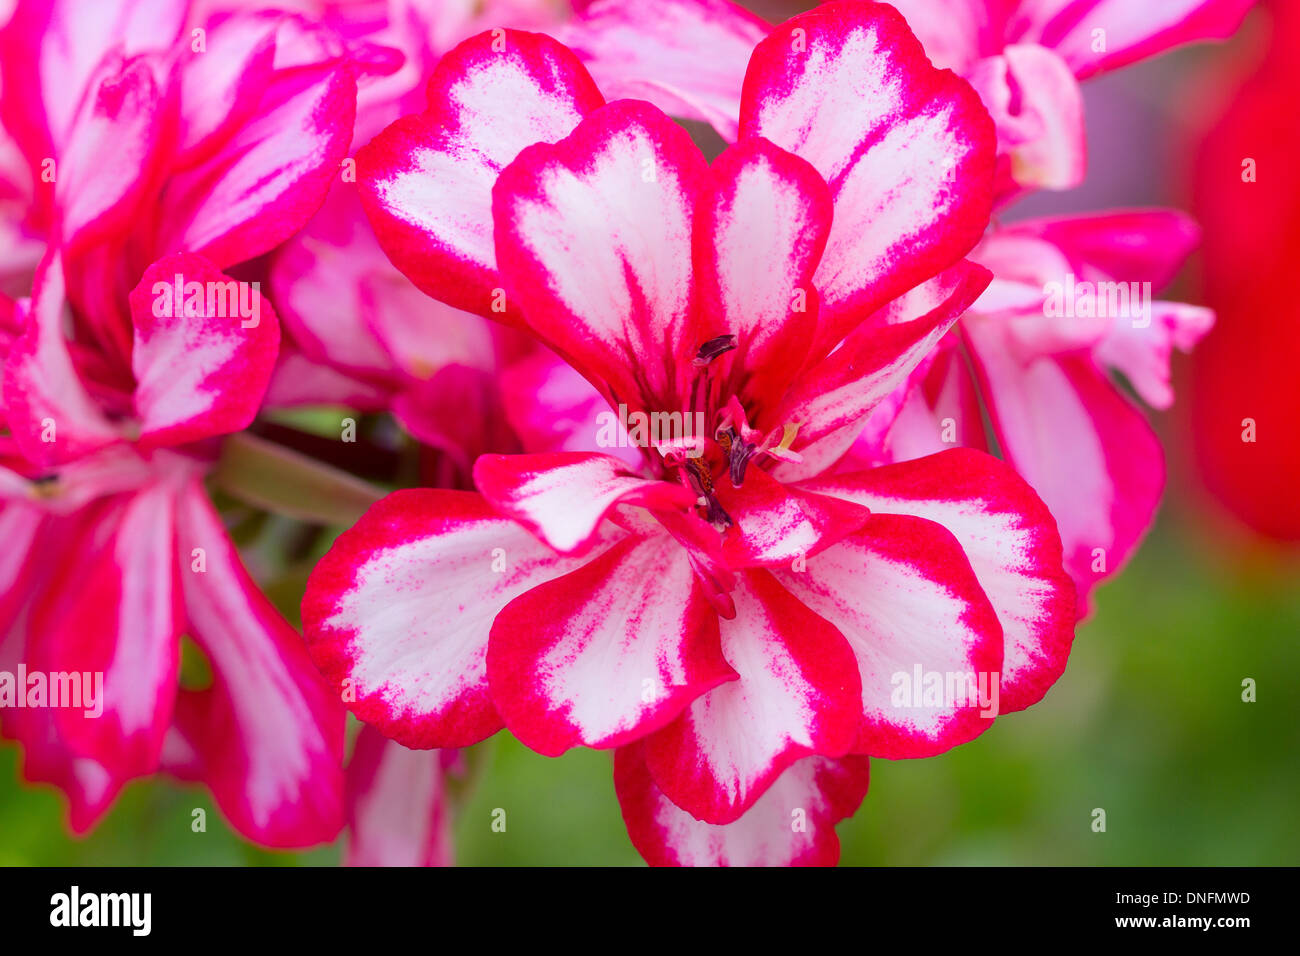 ivy-leaf geranium 'Rouletta' or cascading geranium 'Rouletta', Pelargonium peltatum 'Rouletta' // Géranium lierre 'Rouletta' - Stock Image